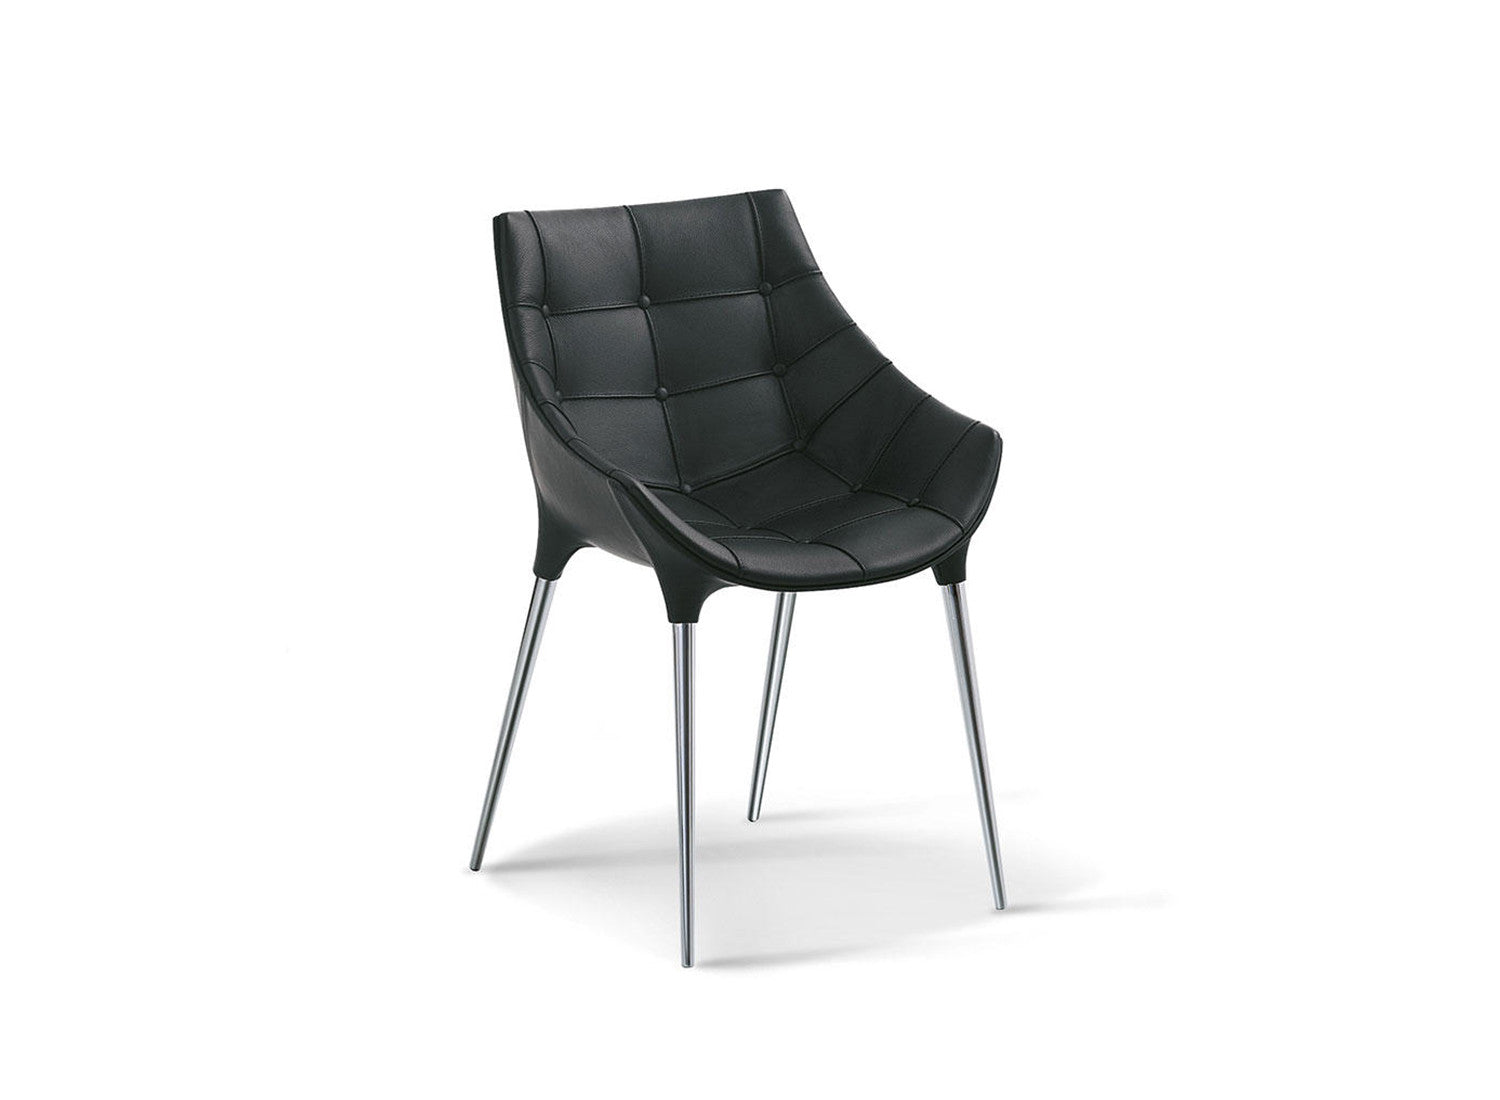 246 Passion Chair